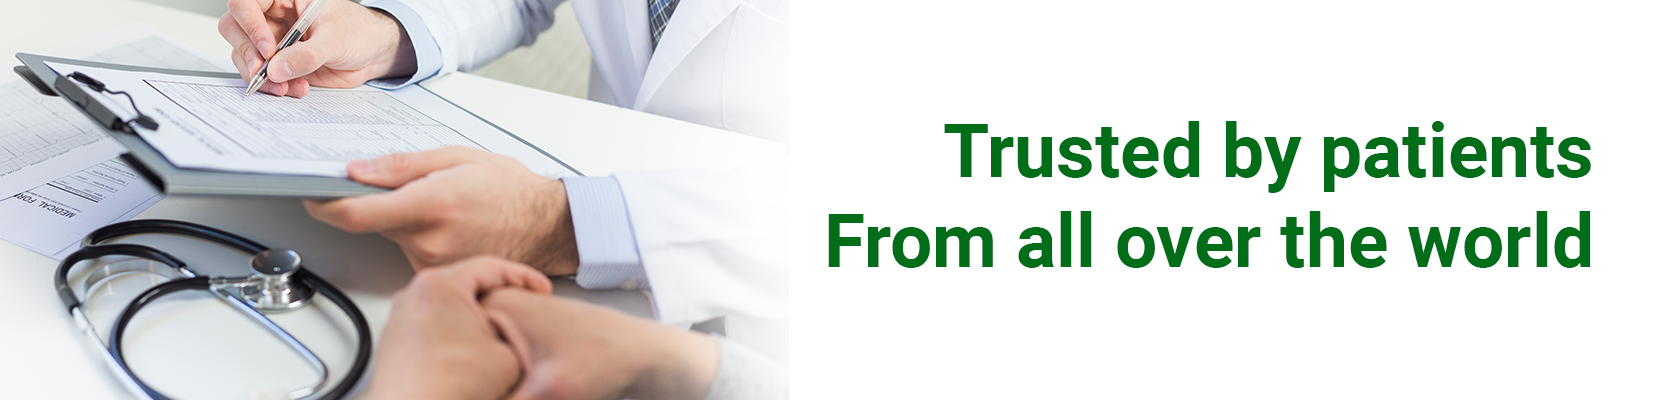 Trusted By patients